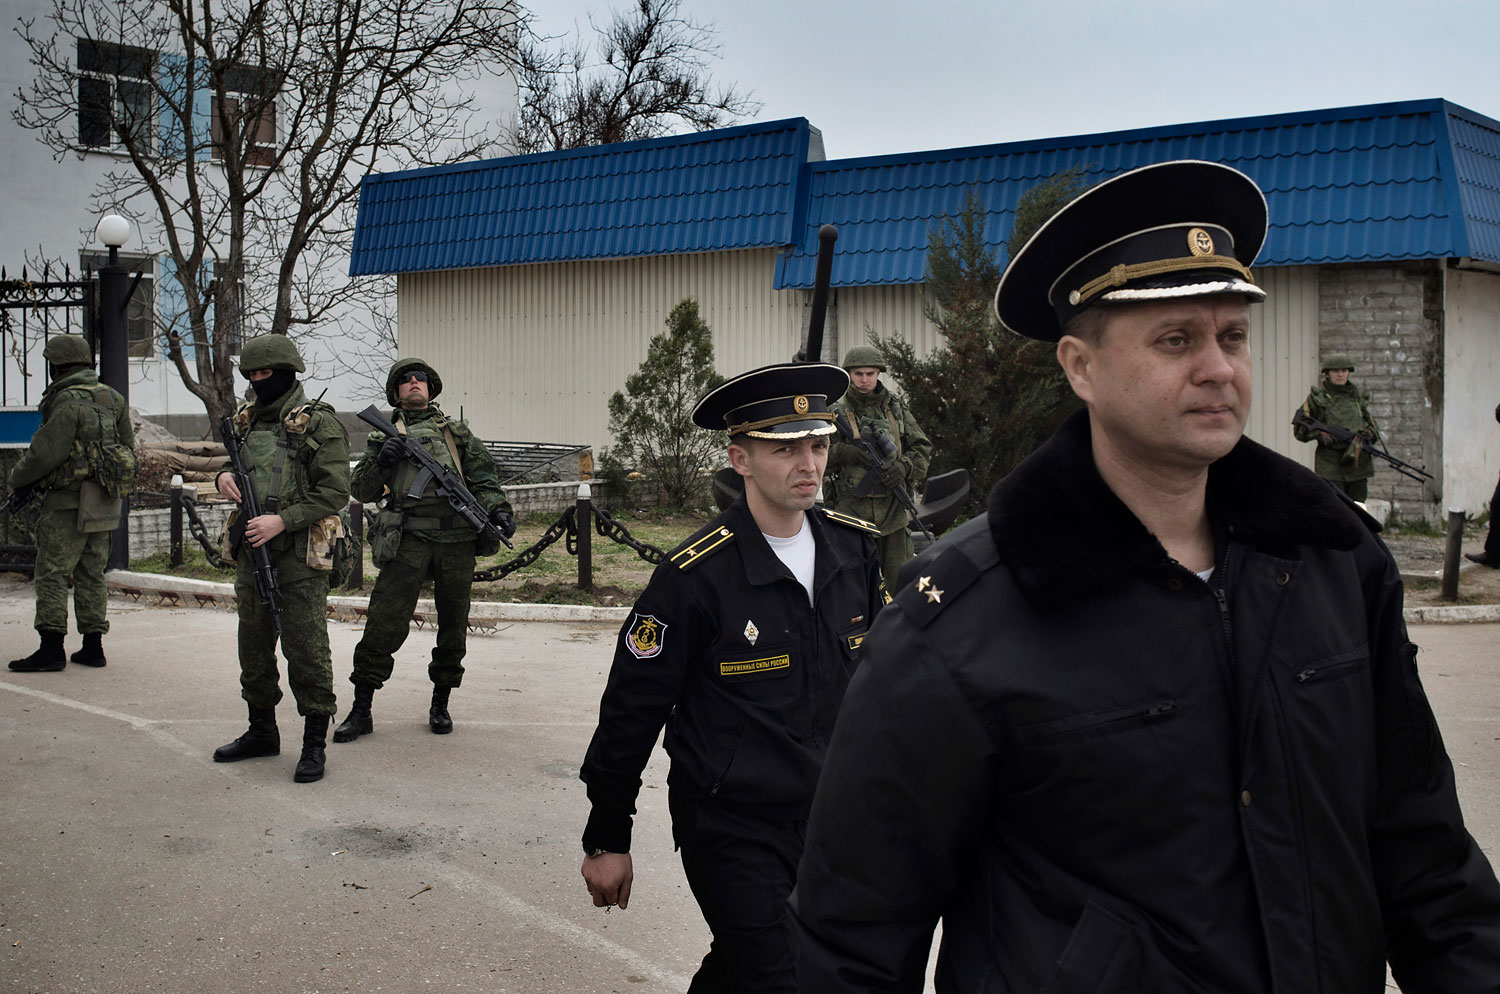 Ukrainian naval officers passed by Russian military personnel as they left the Ukrainian naval headquarters in Sevastopol on Wednesday after Russian forces and local militiamen seized control of the facility, March 19, 2014.